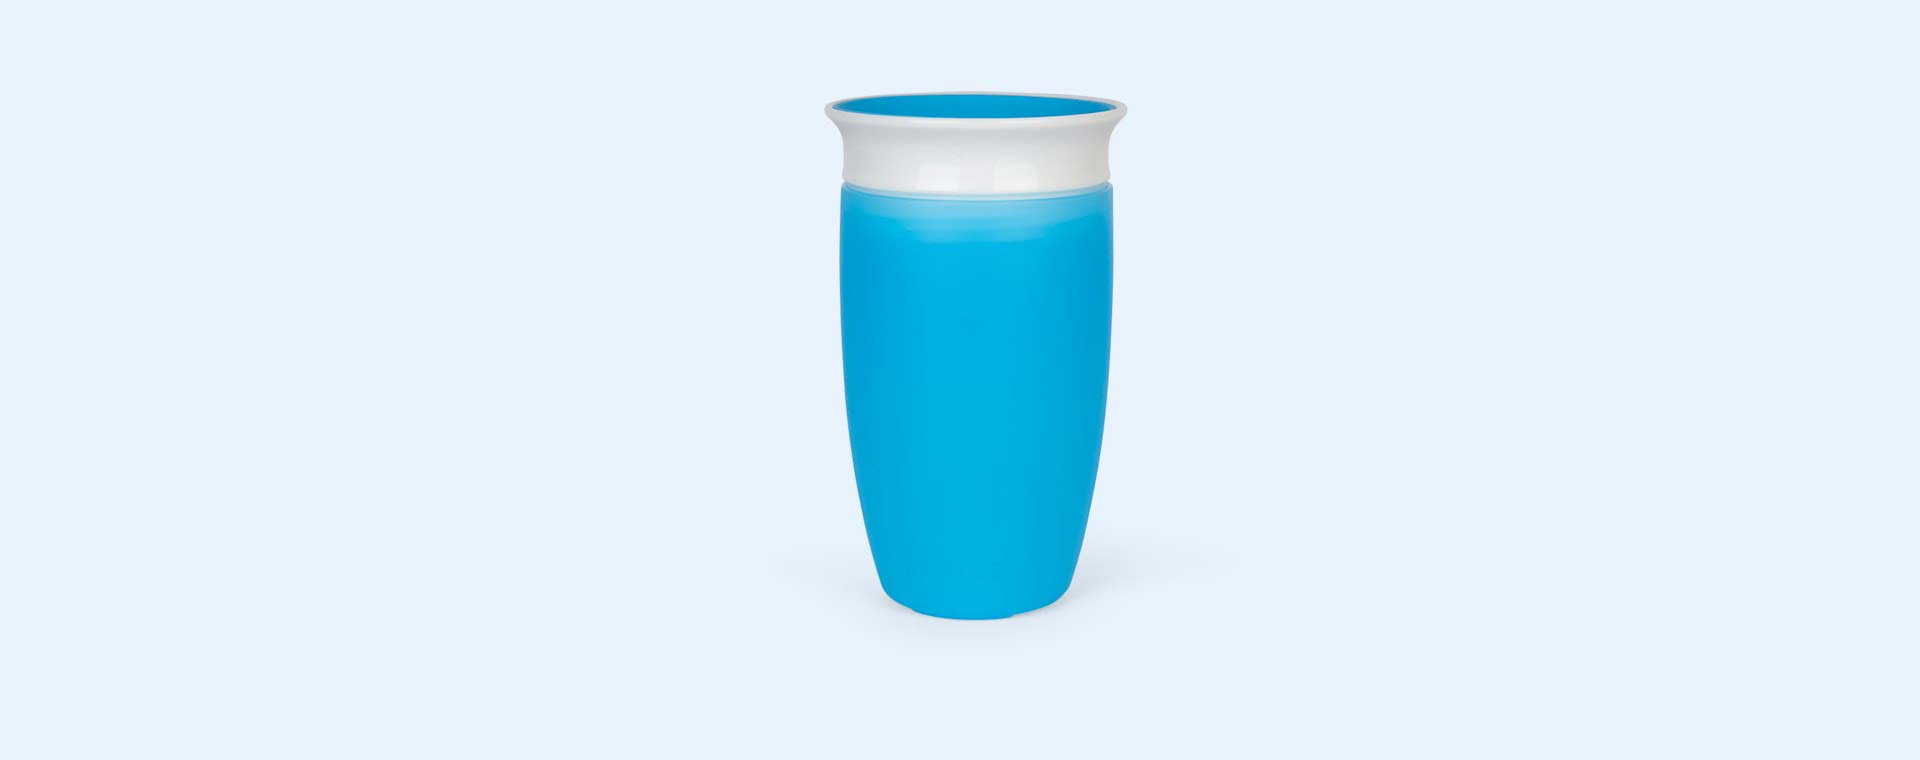 Blue Munchkin Miracle 360 sippy cup